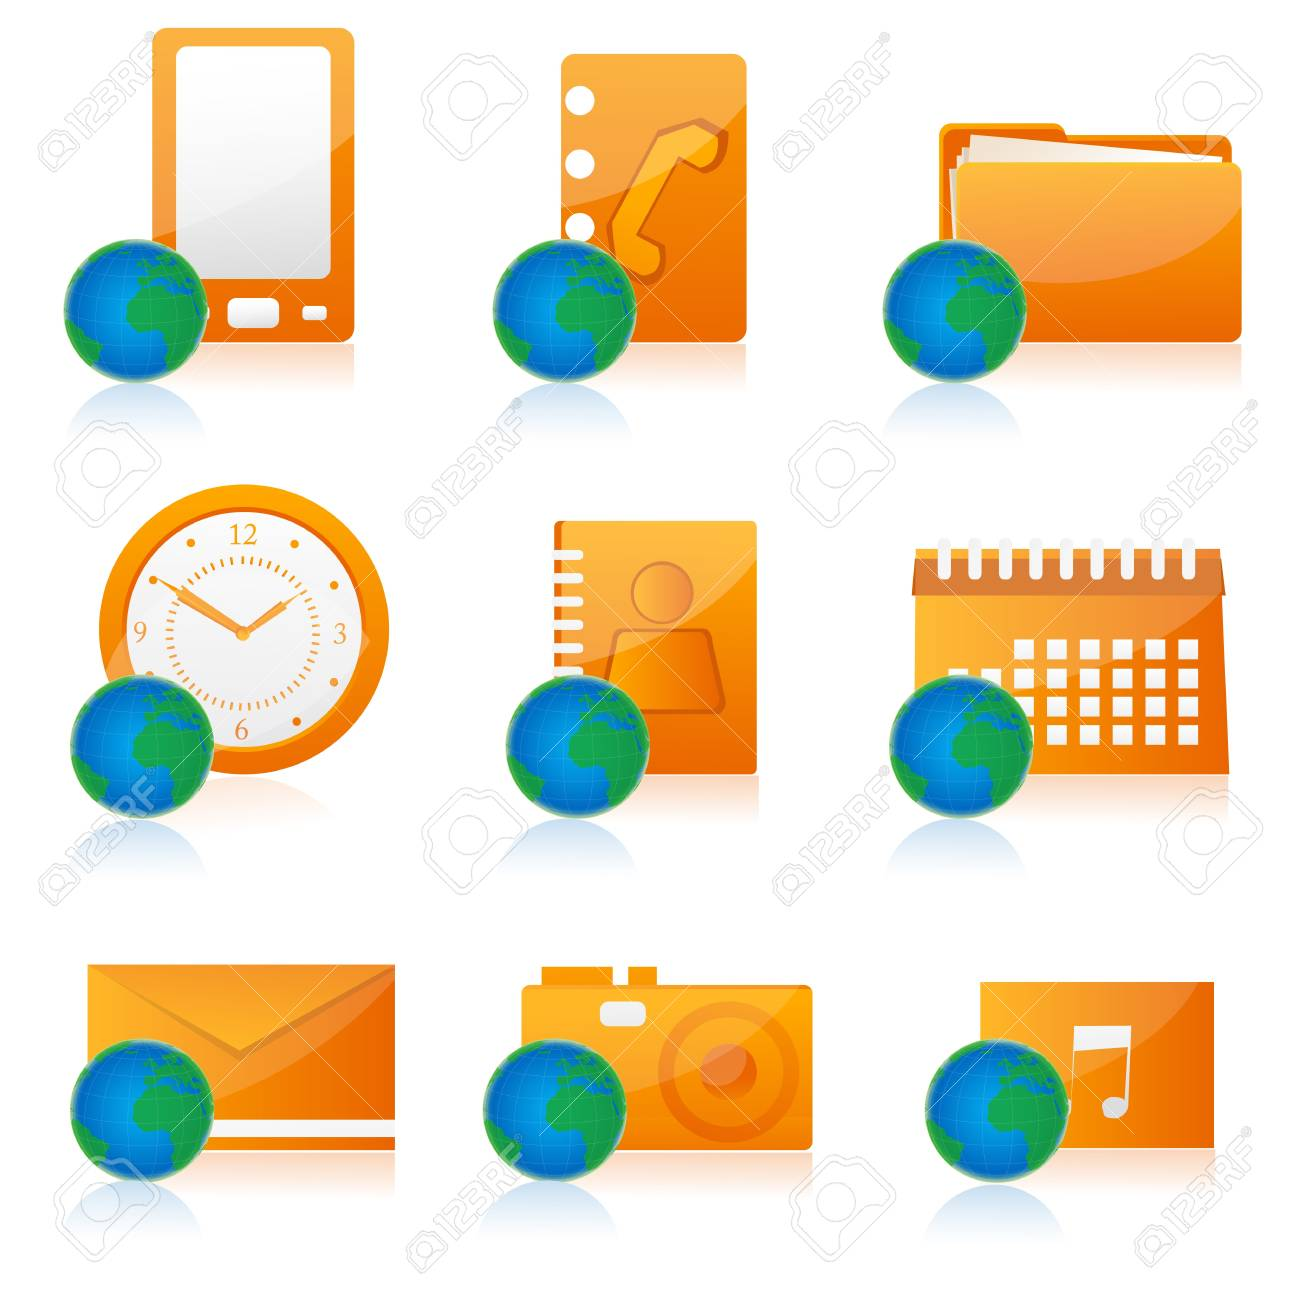 illustration of set of different office icon Stock Photo - 8112542